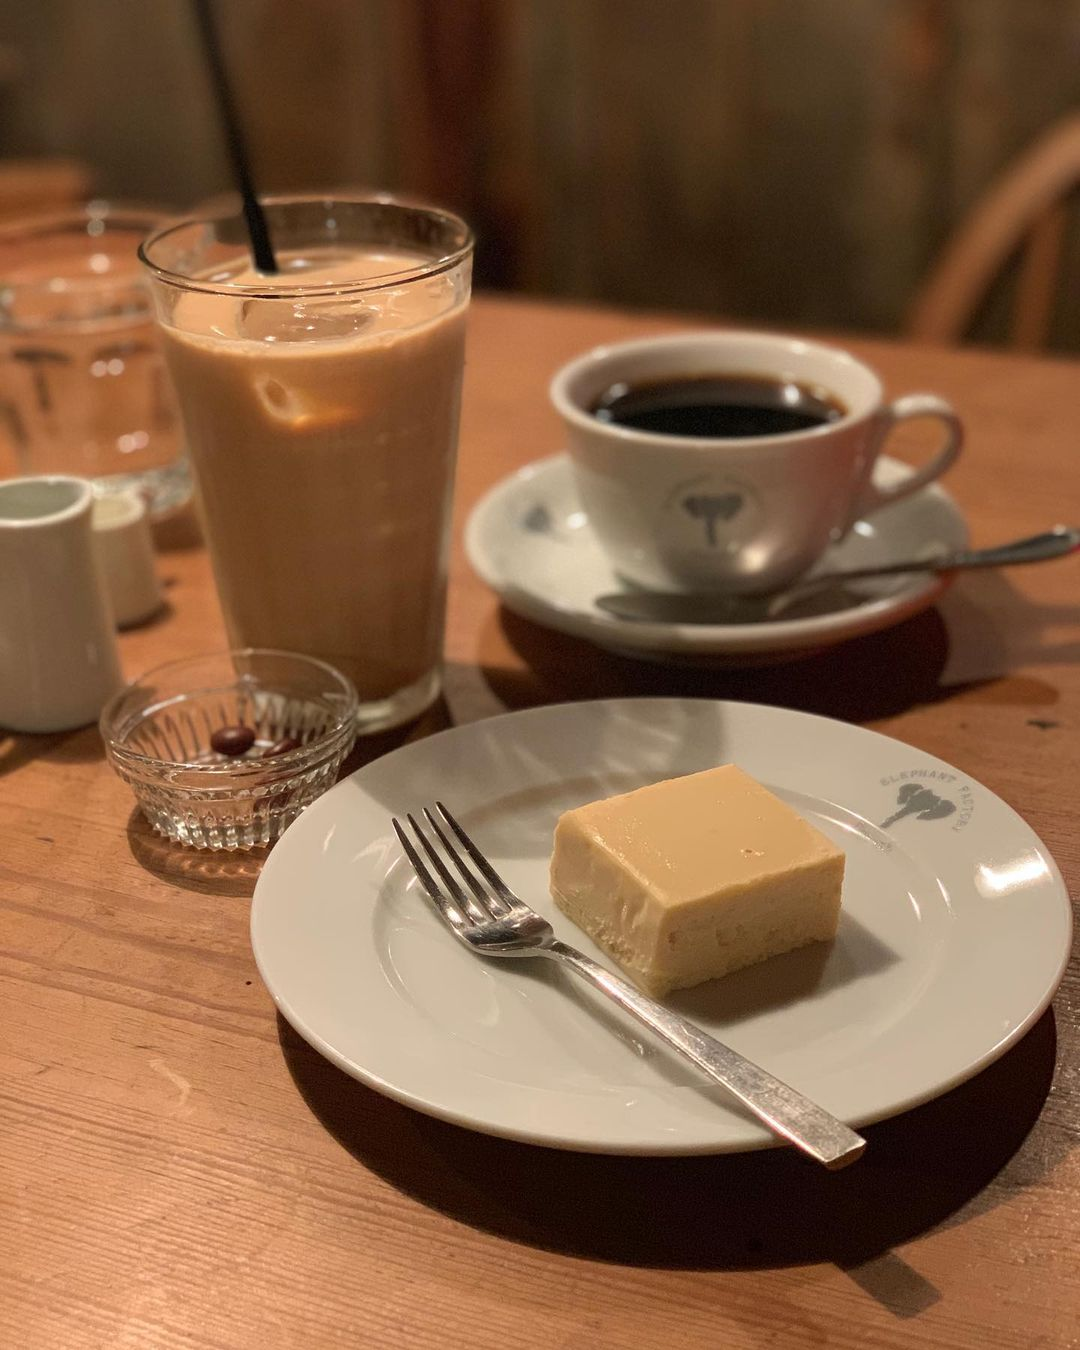 Kyoto cafes - cheesecake